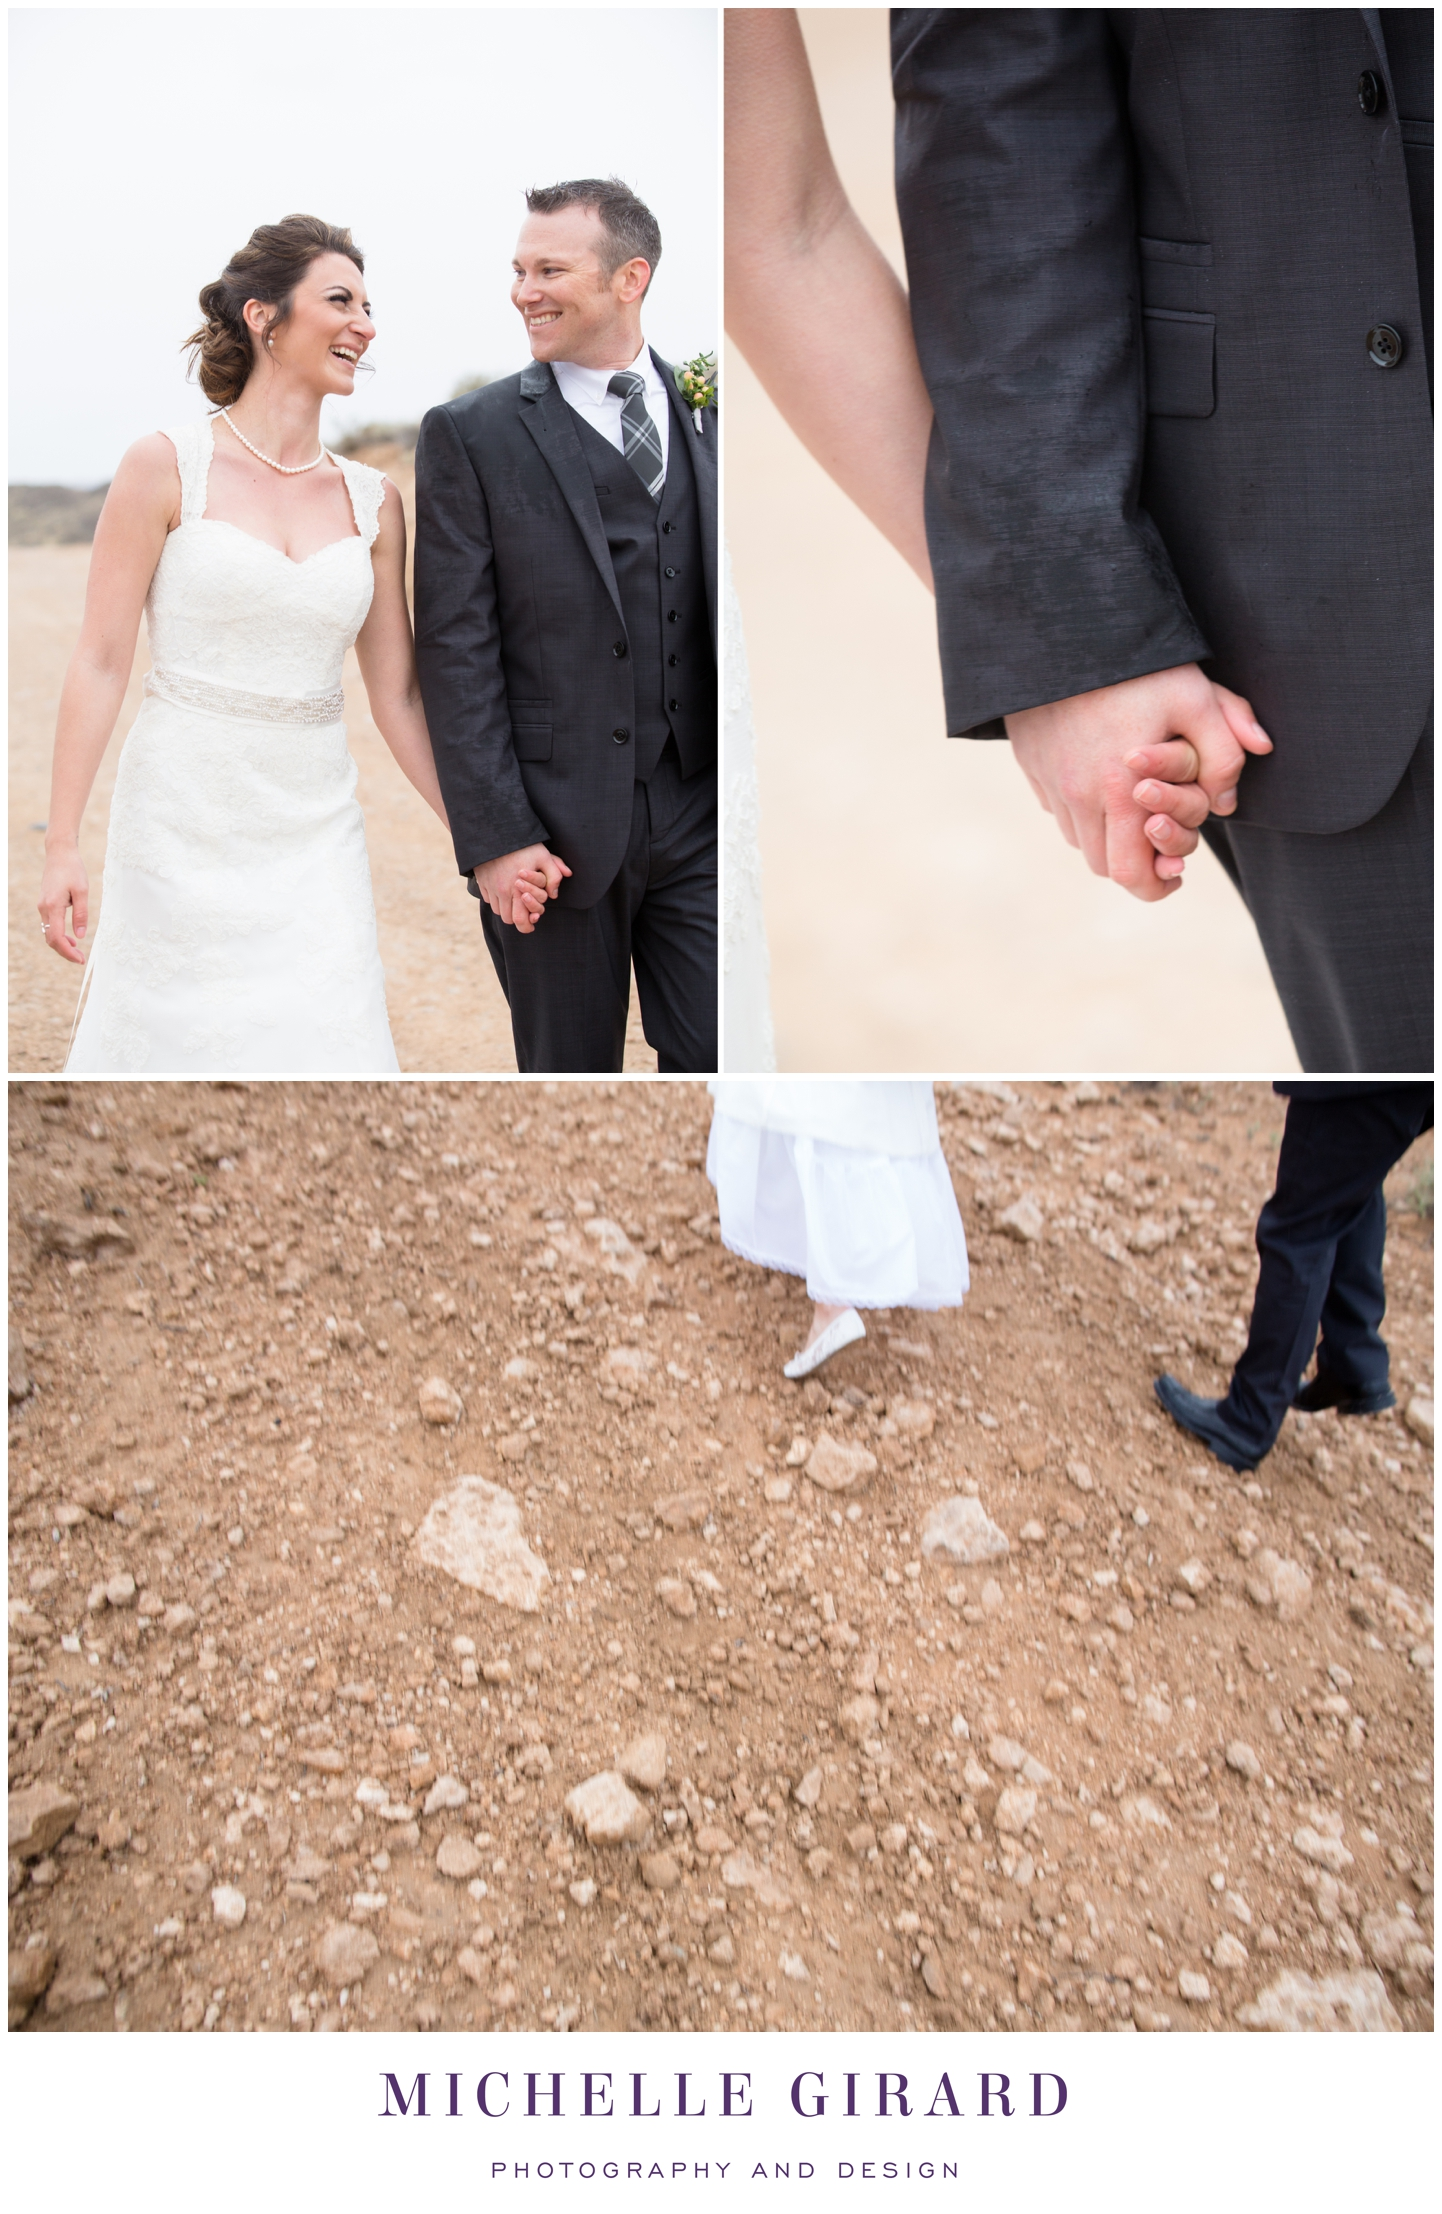 las-vegas-desert-wedding-bride-groom-photography-nevada-michelle-girard-08.jpg